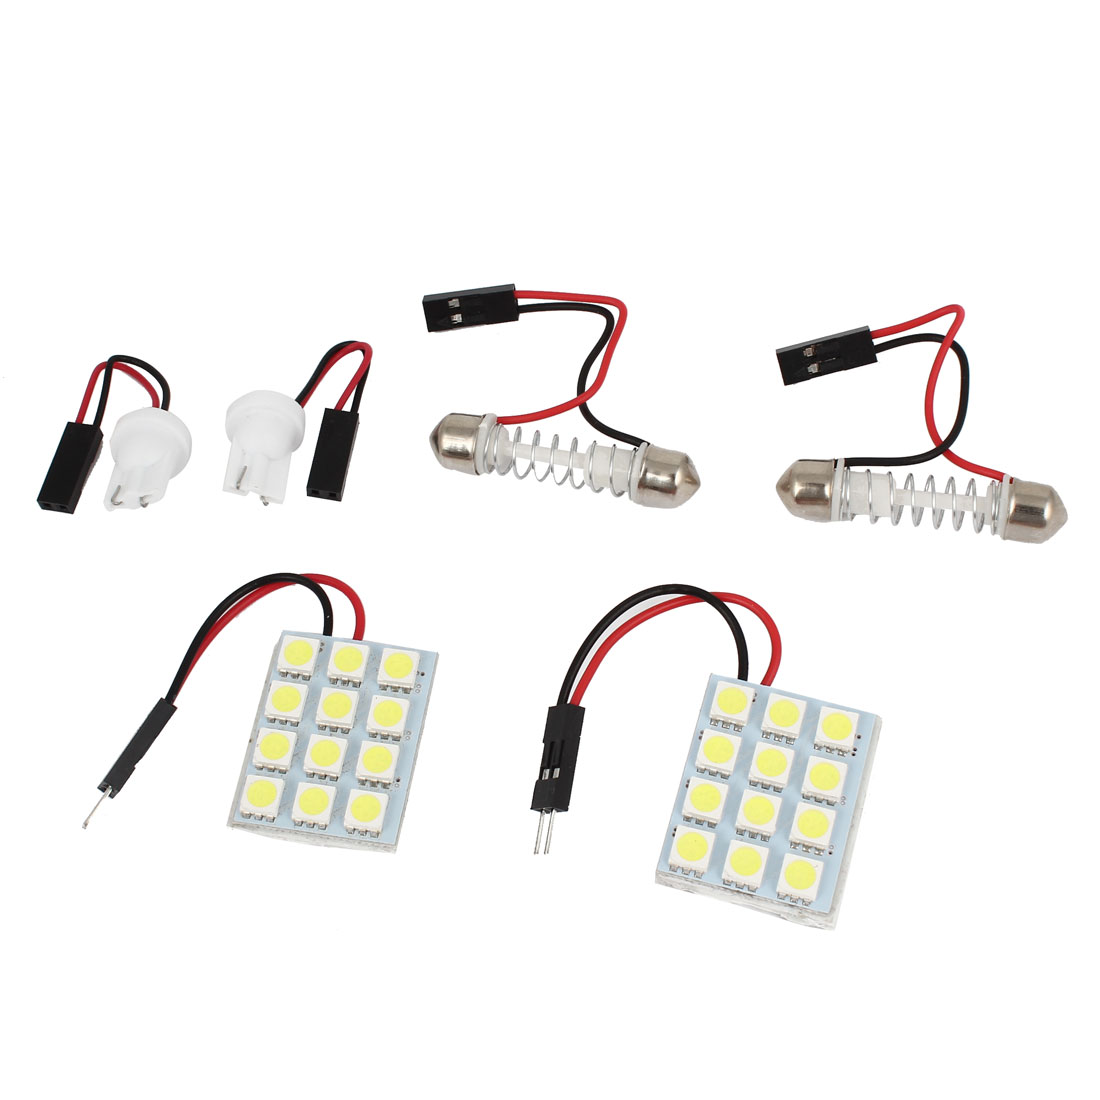 2 Pcs Blue 5050 SMD 12 LED Panel T10 Dome Light Lamp Bulbs for Car Auto Internal